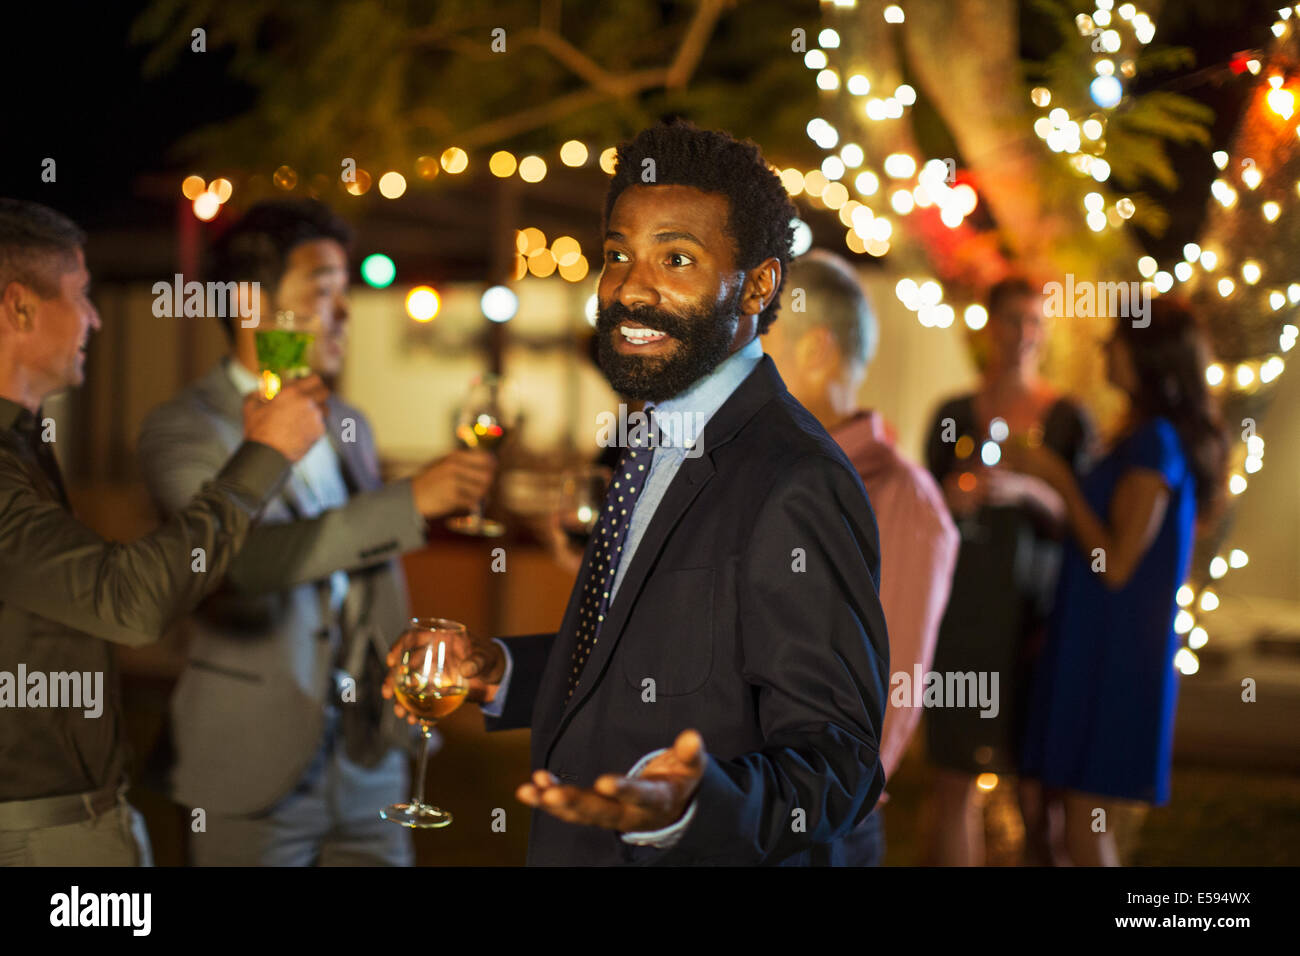 Man gesturing with wine at party - Stock Image